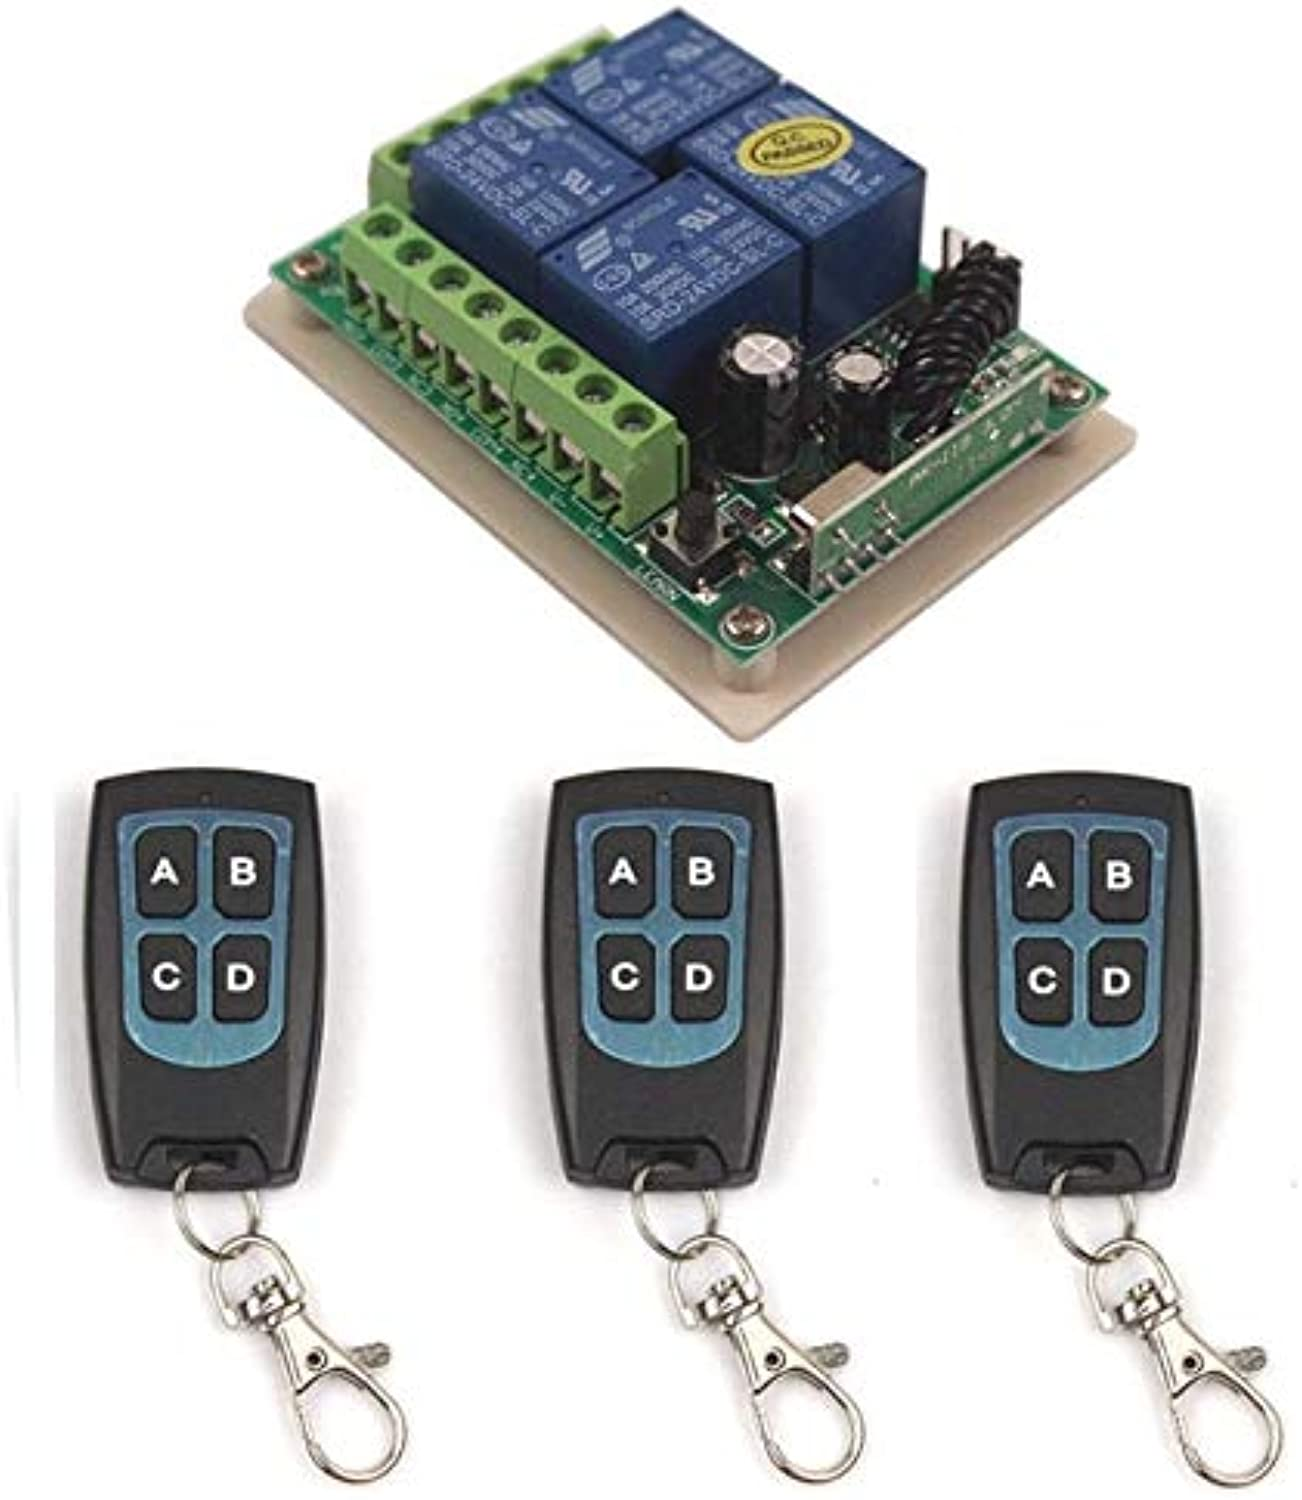 Sleeplion 24V 4CH Remote Control Switch 315 433MHz Multi Remote Switch 24V 4CH Waterproof Transmitter Receiver Module Board(color  3X Control 433MHz)